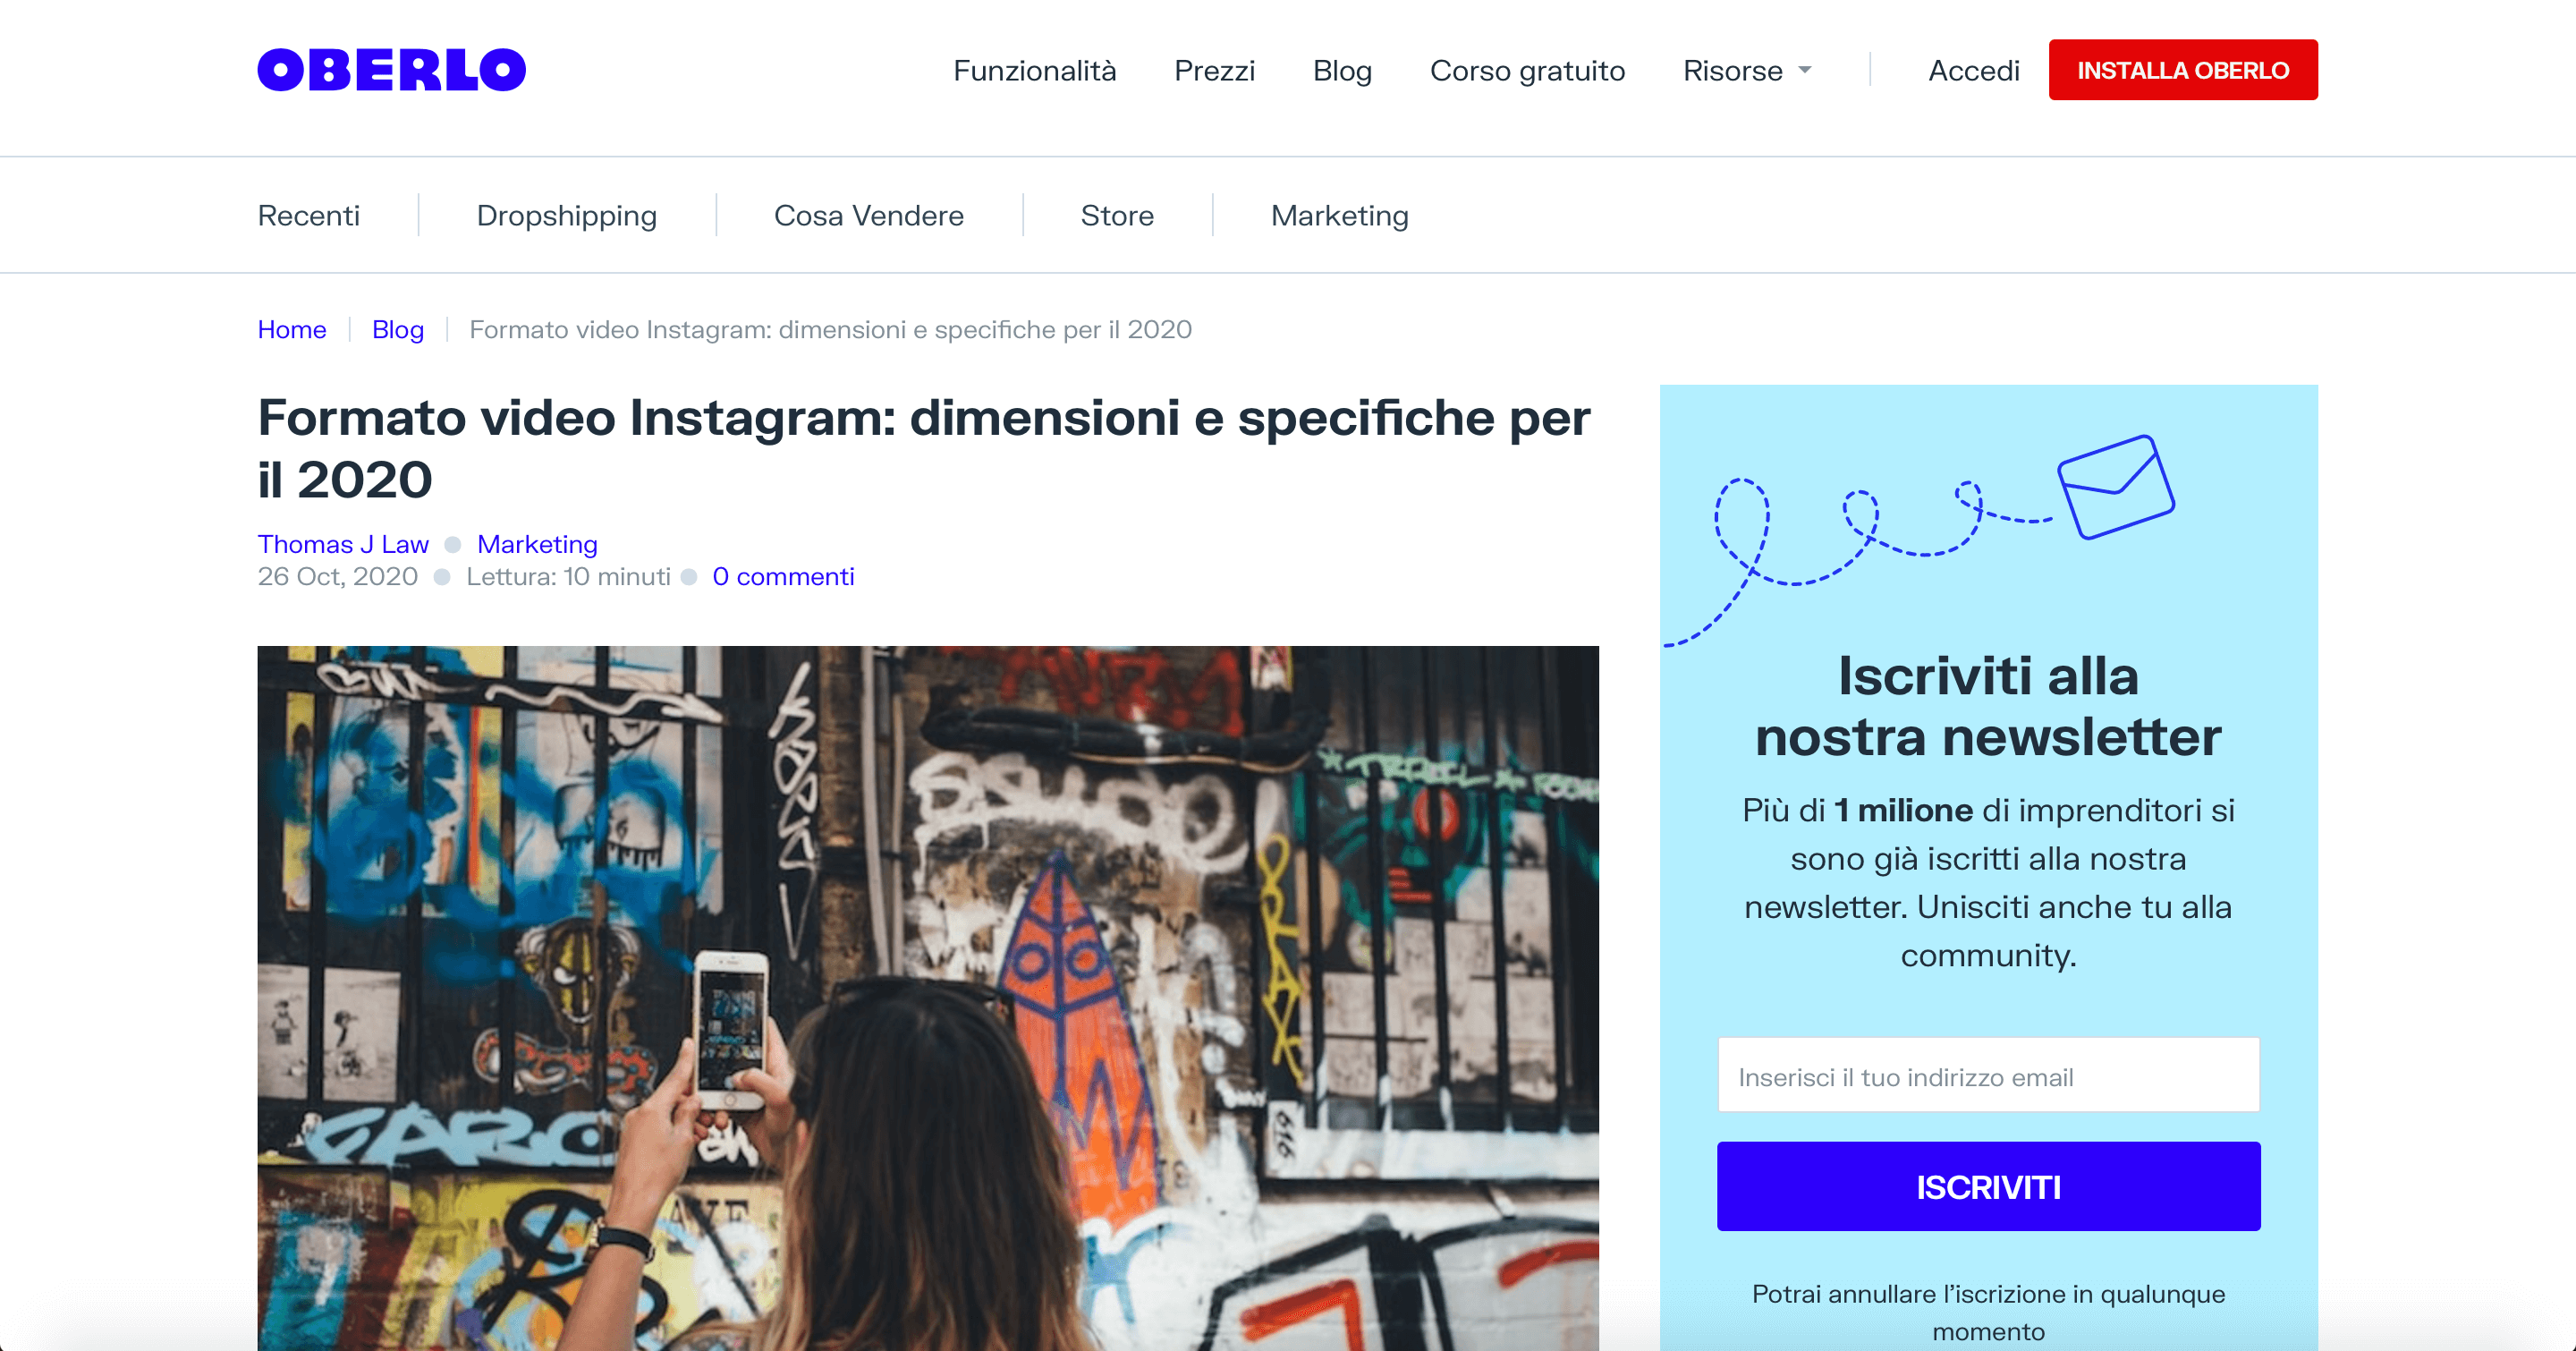 Oberlo (Shopify) - Instagram Video Format - Content Marketing